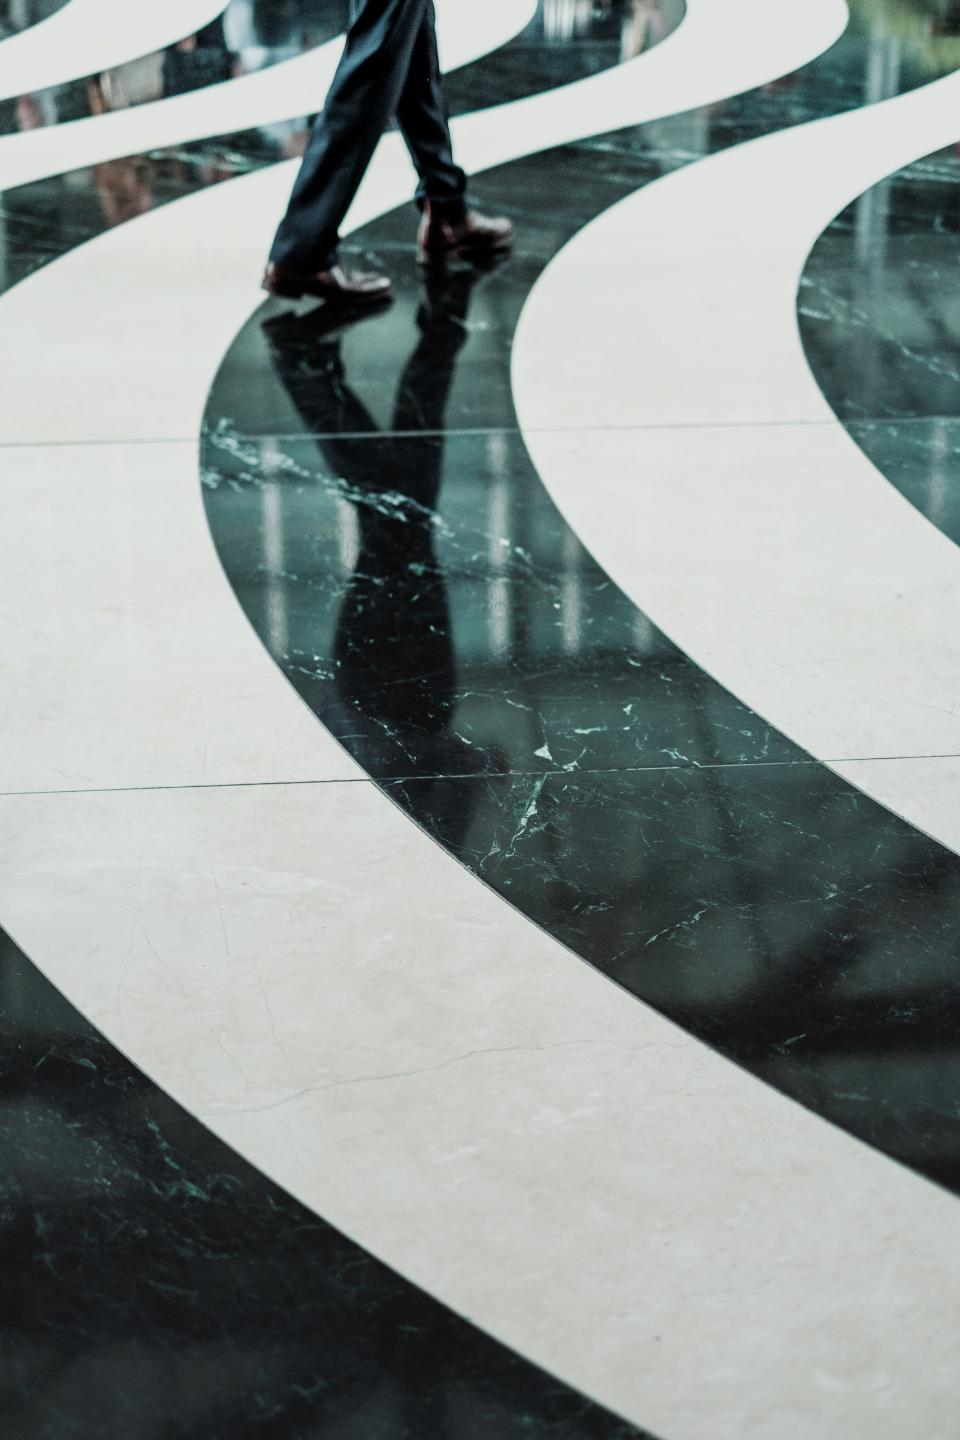 tile marble floor design people walking reflection